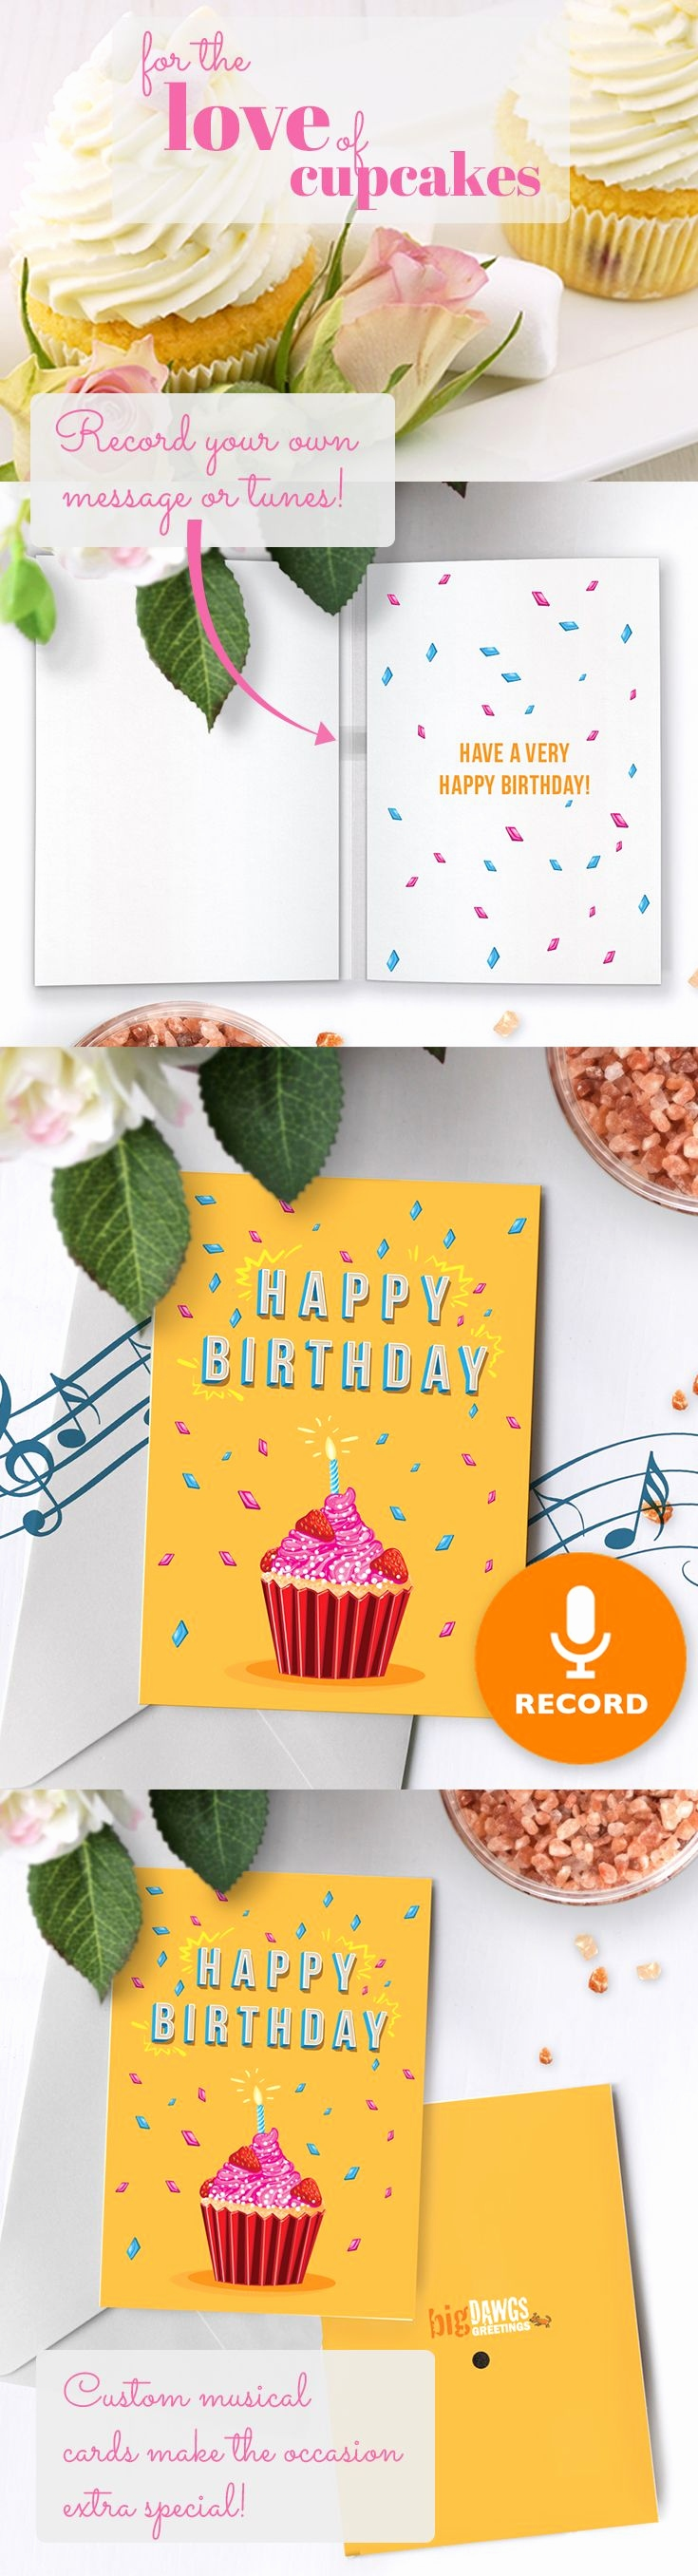 singing birthday cards by text message ; singing-birthday-cards-by-text-message-new-the-25-best-music-greeting-cards-ideas-on-pinterest-of-singing-birthday-cards-by-text-message